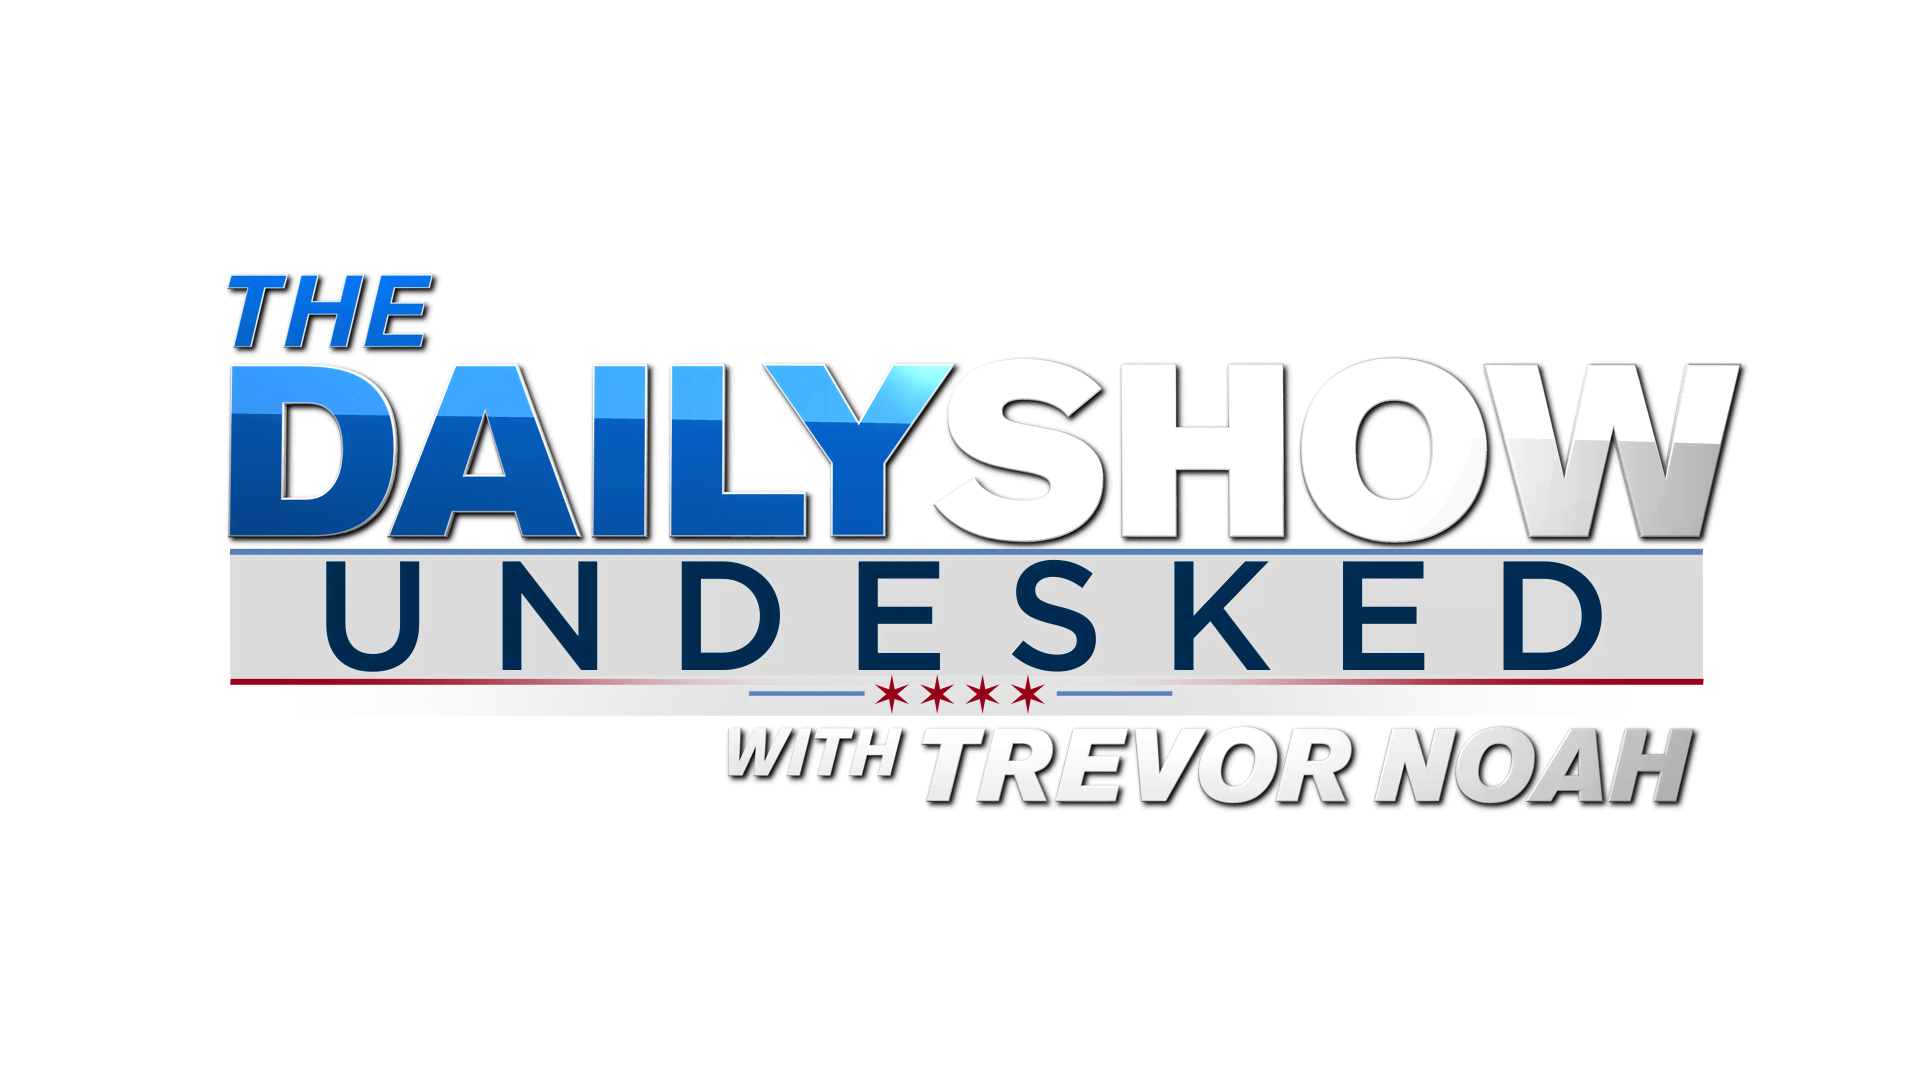 - THE DAILY SHOW HEADS TO CHICAGO OCTOBER 16-19